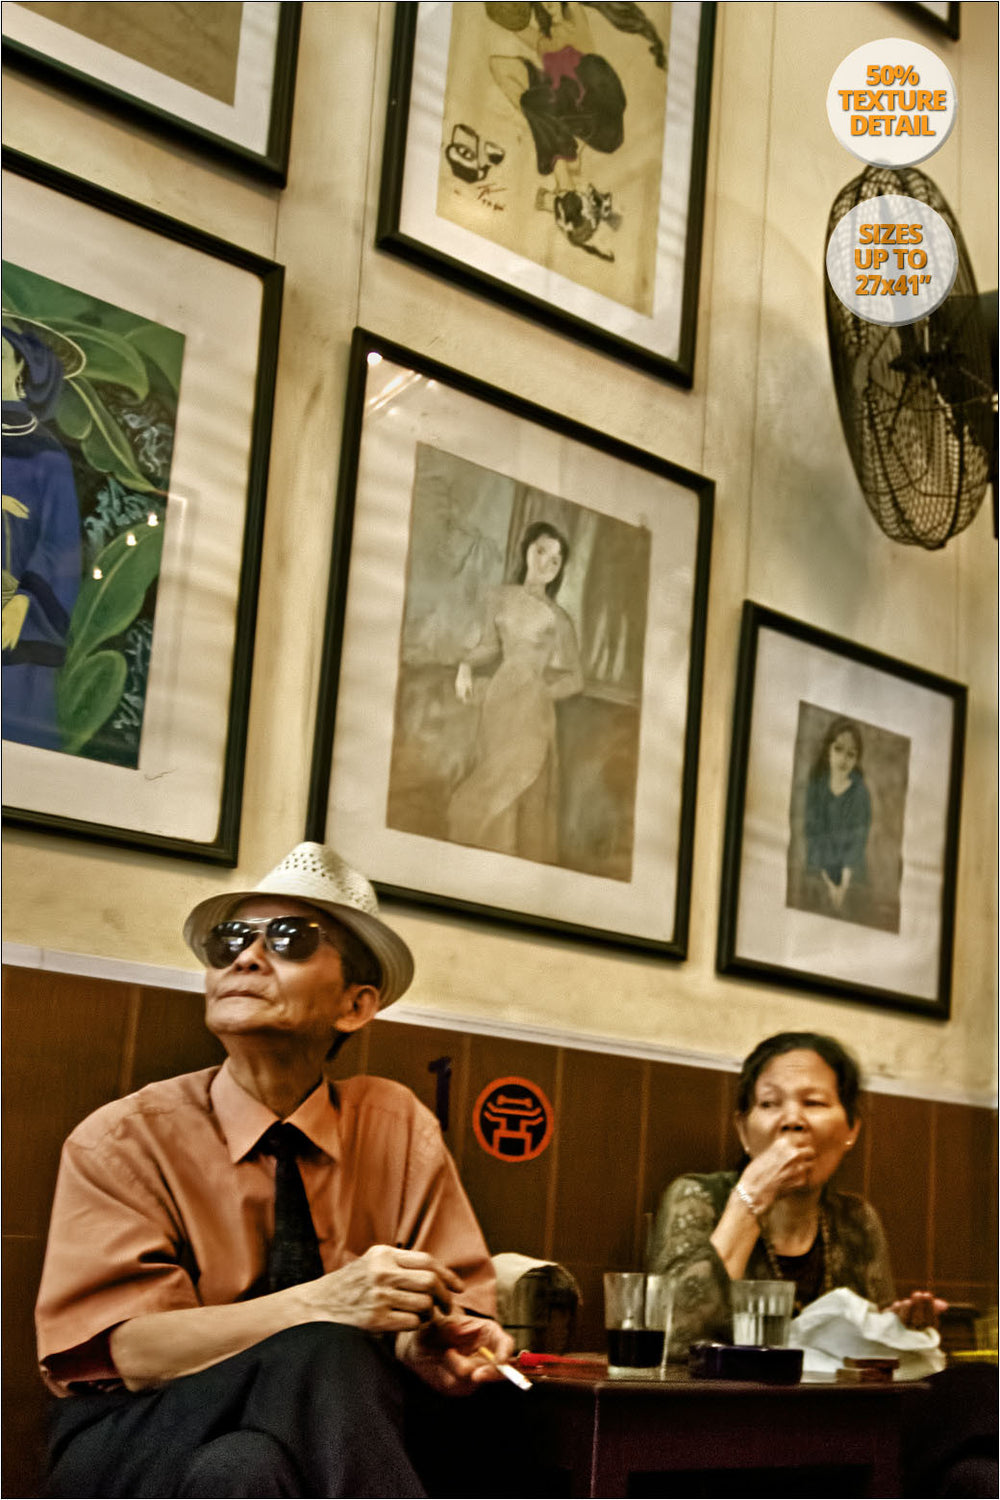 Couple in Cafe Lam, Hanoi, Vietnam.